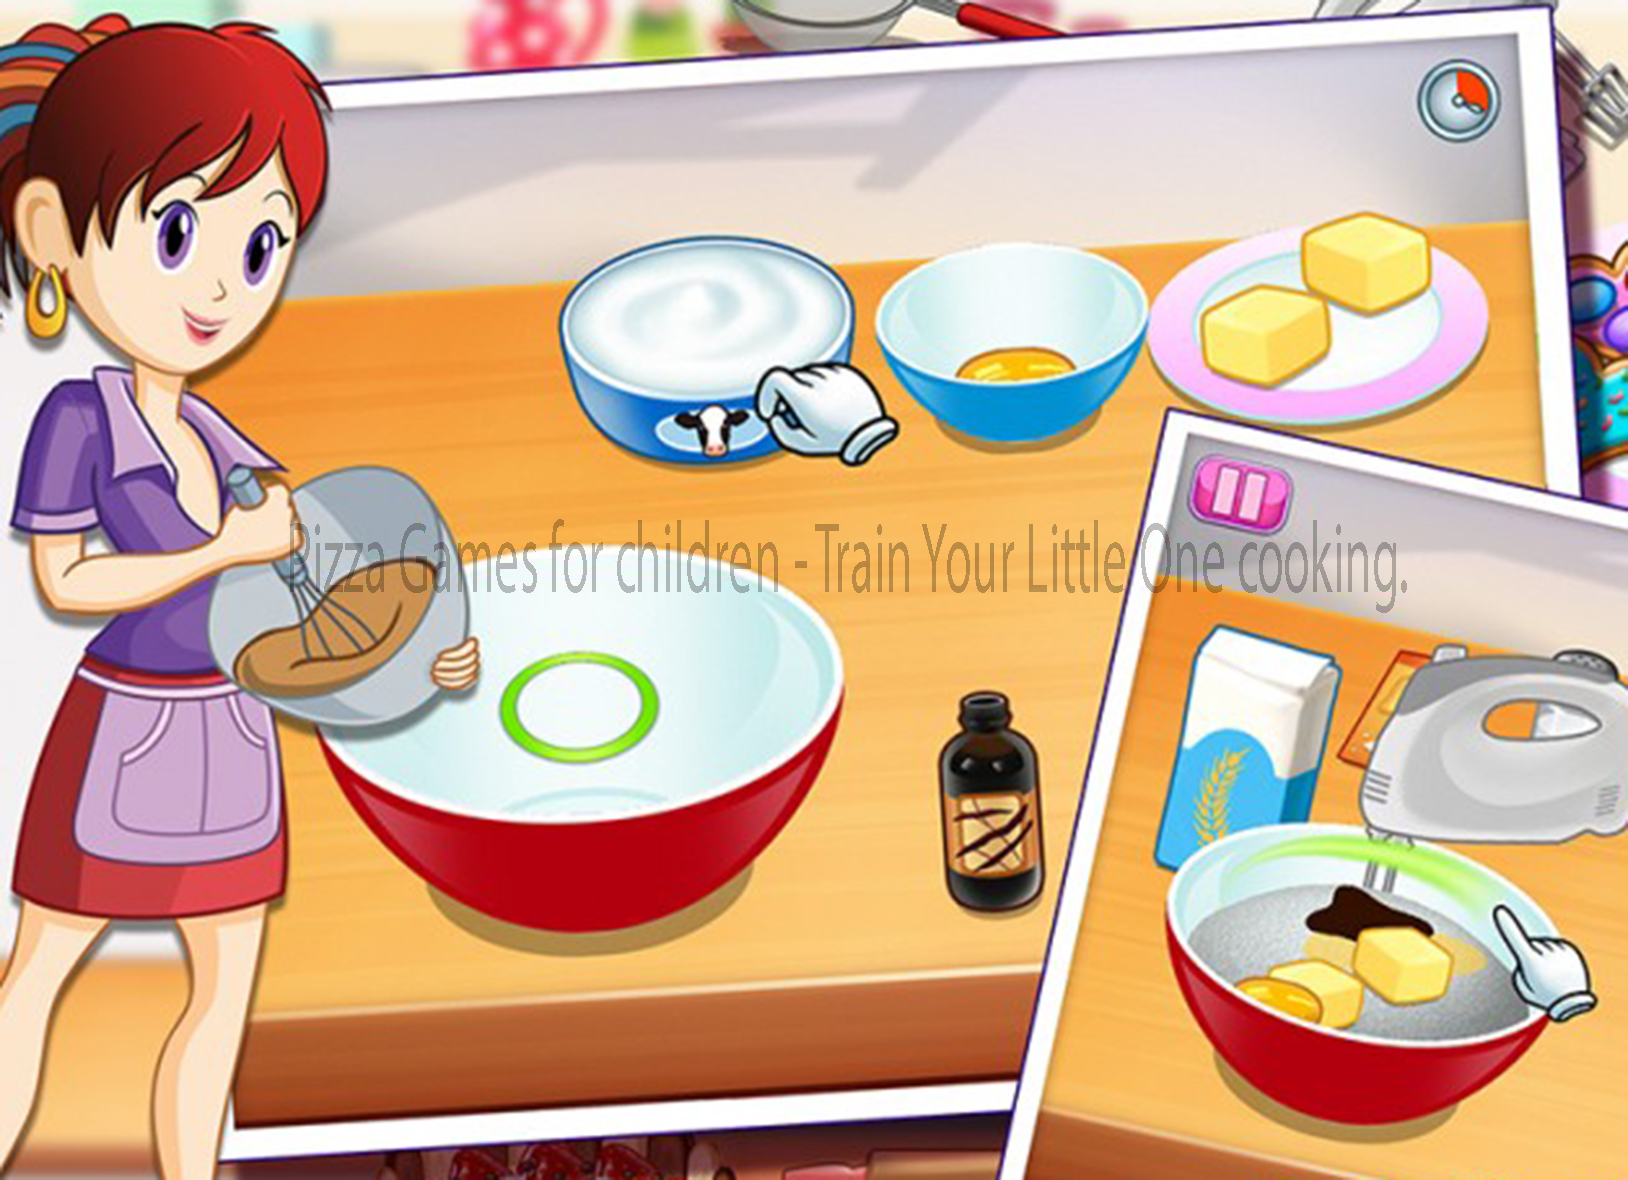 Pizza Games for children - Train Your Little One cooking